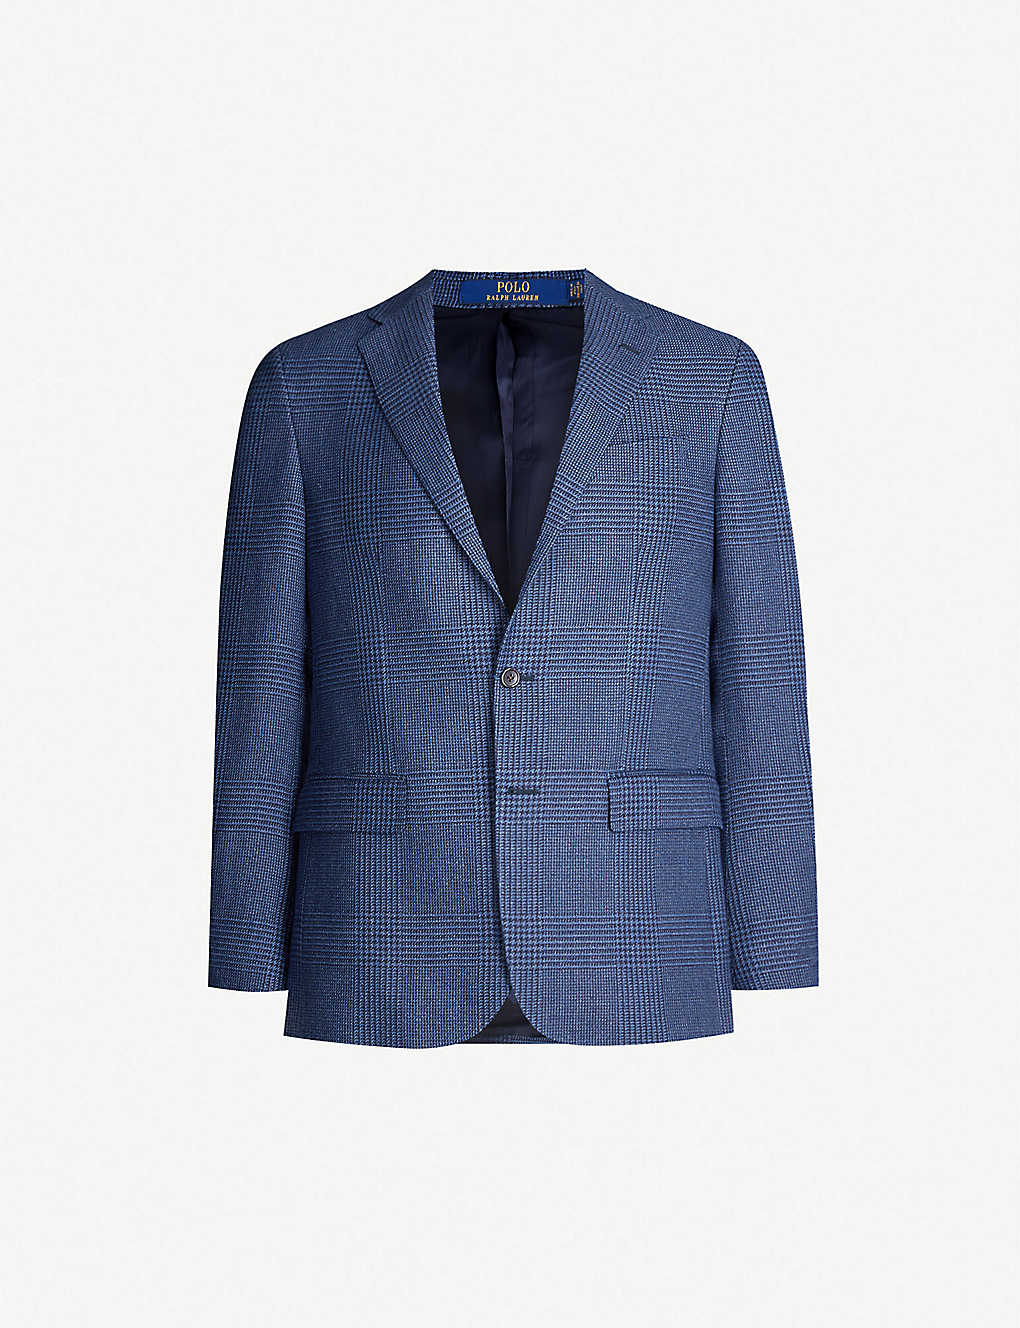 cbf9ba96 Single-breasted regular-fit linen and cotton-blend blazer - Navy and black  ...